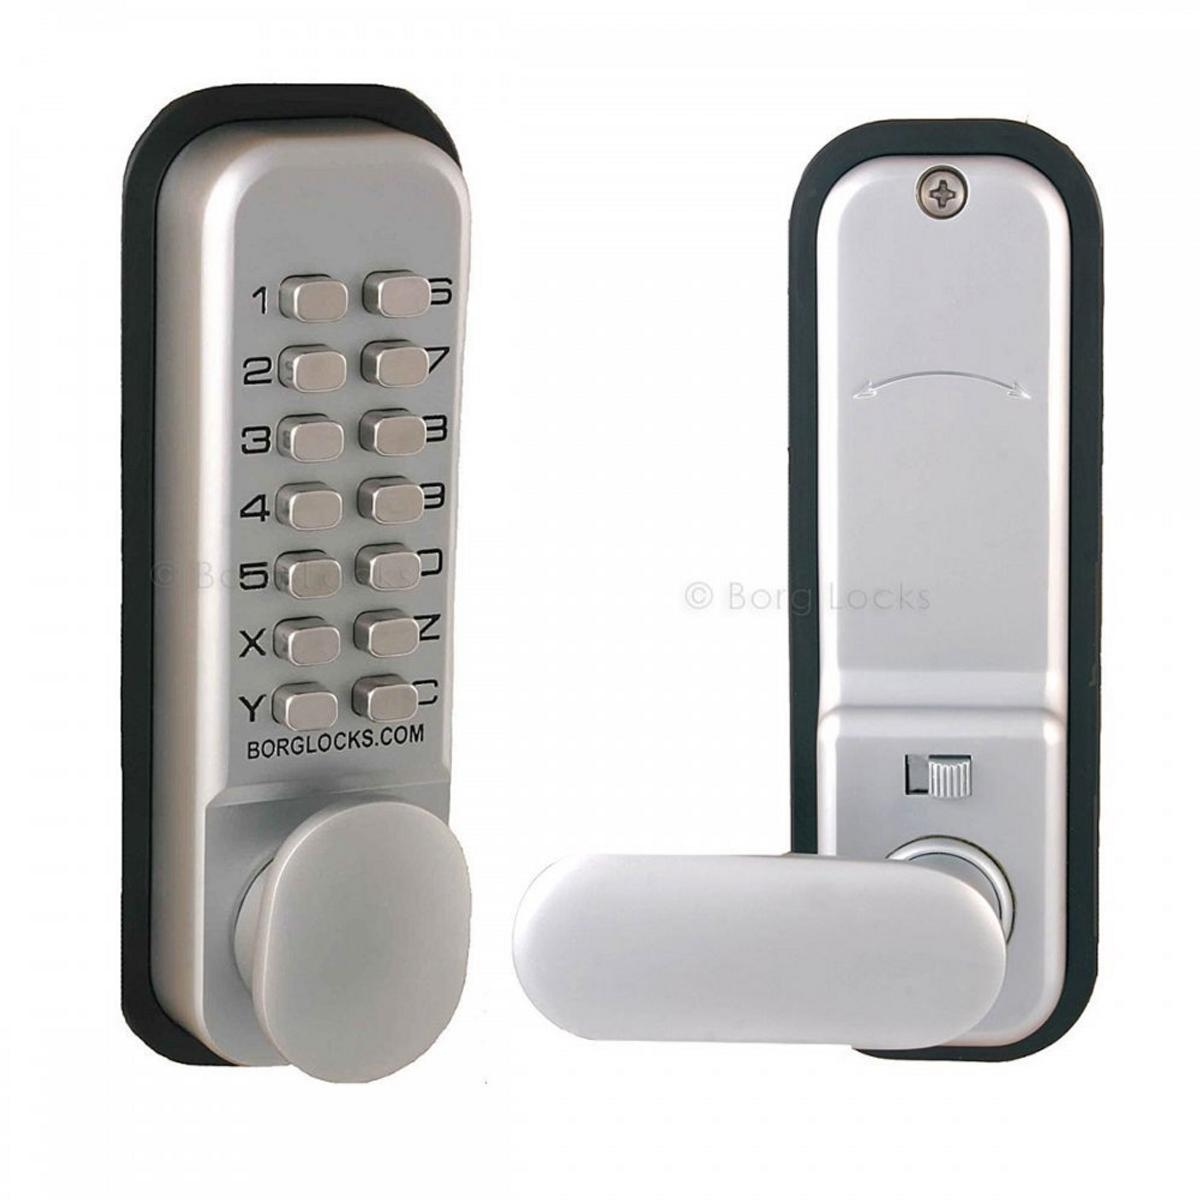 Borg 2201 Digital Push Button Door Lock